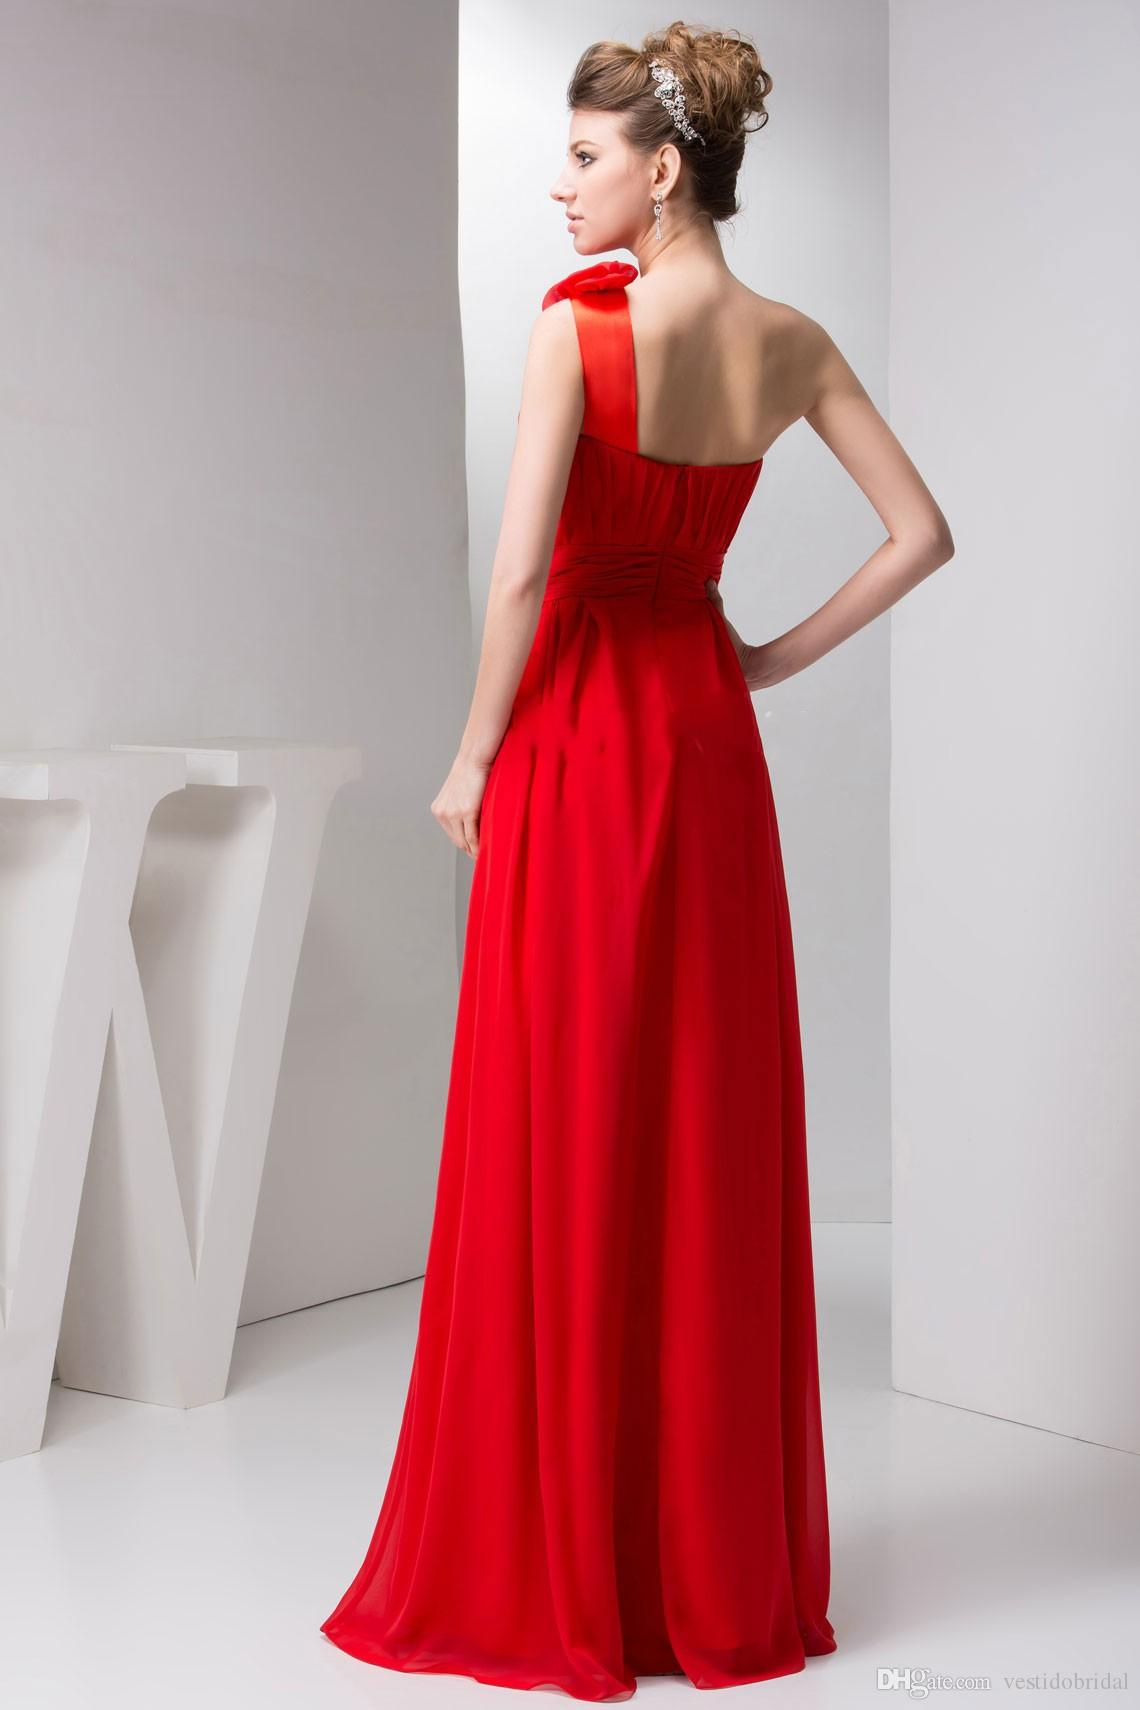 Cheap simple red one shoulder bridesmaid dress flower long floor simple red one shoulder bridesmaid dress flower long floor wedding party dress junior maid of honor ombrellifo Gallery